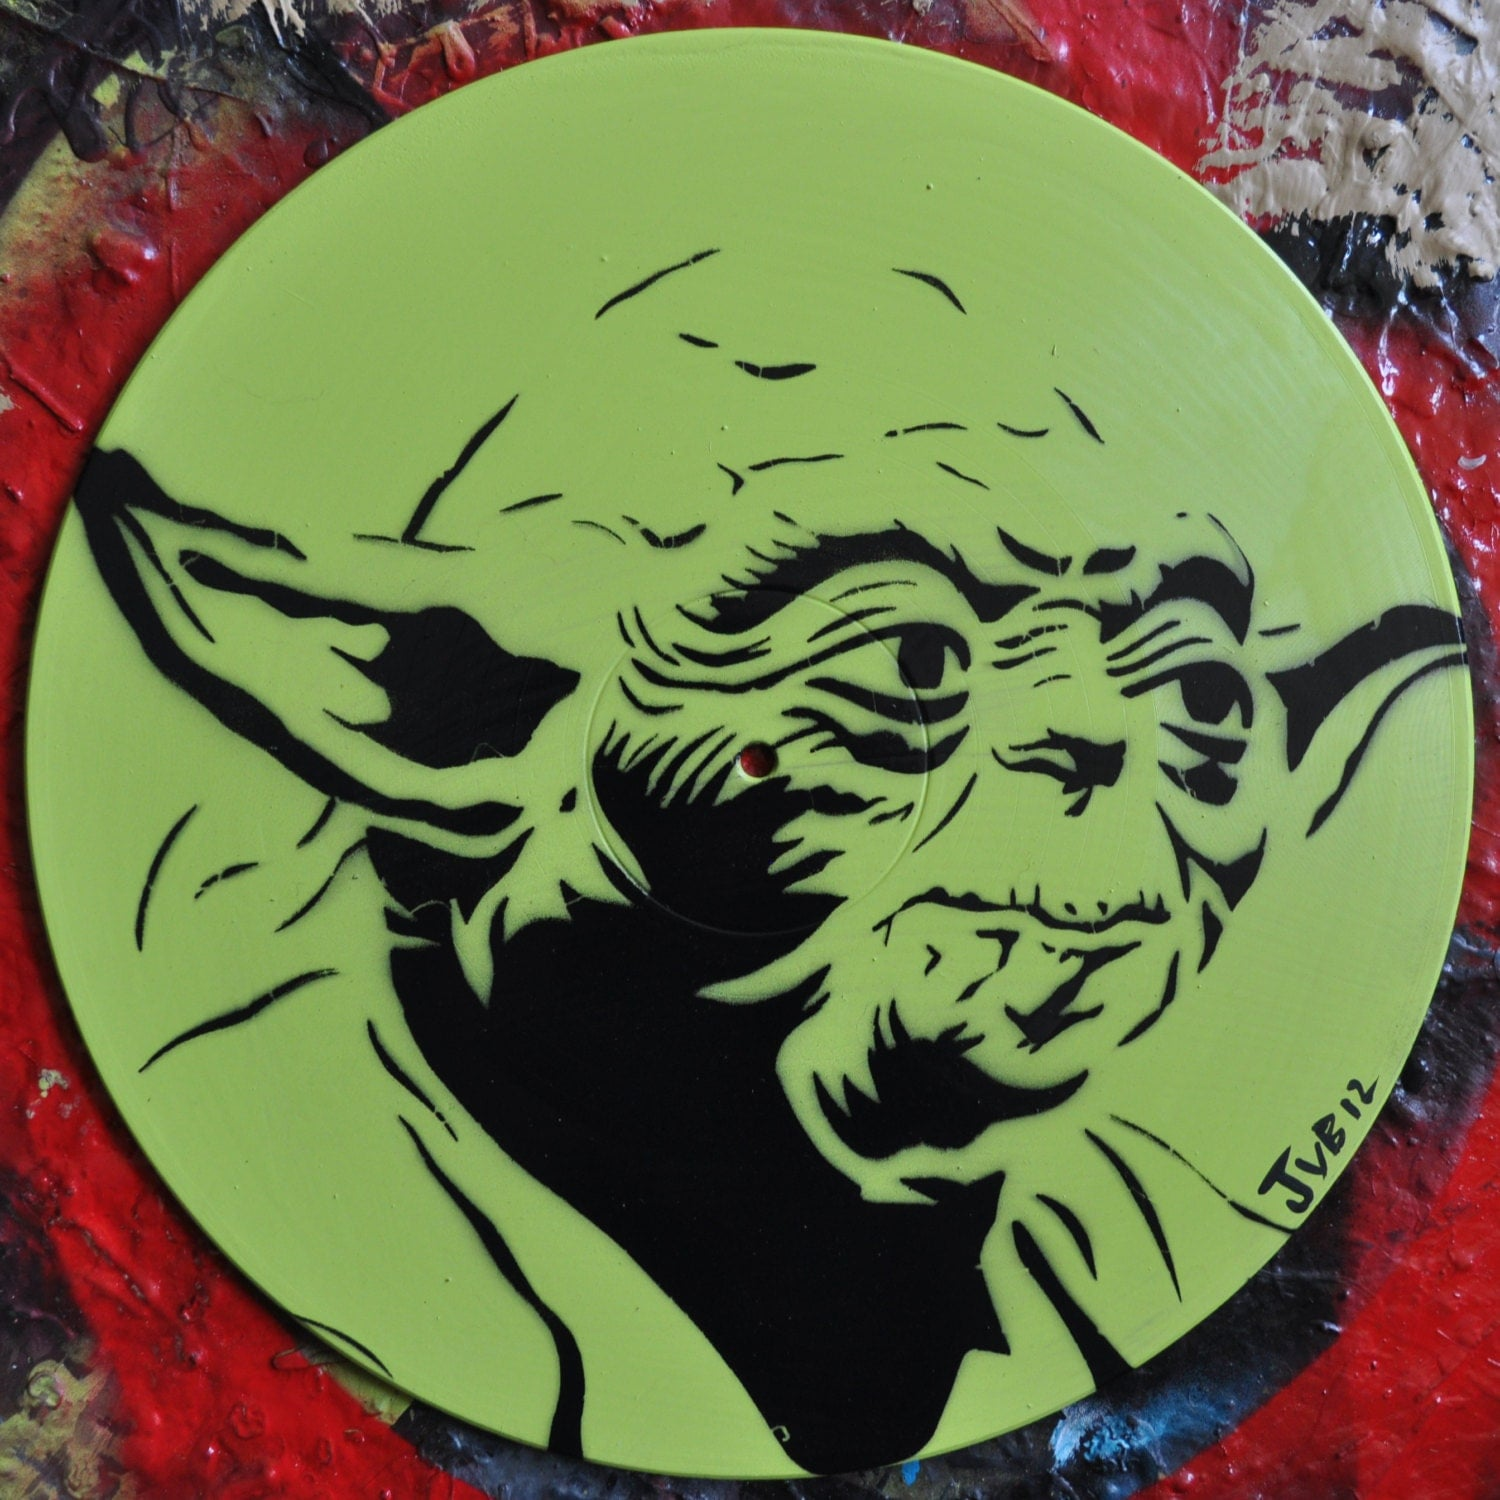 Yoda Stencil Portrait On Repurposed Vinyl Record